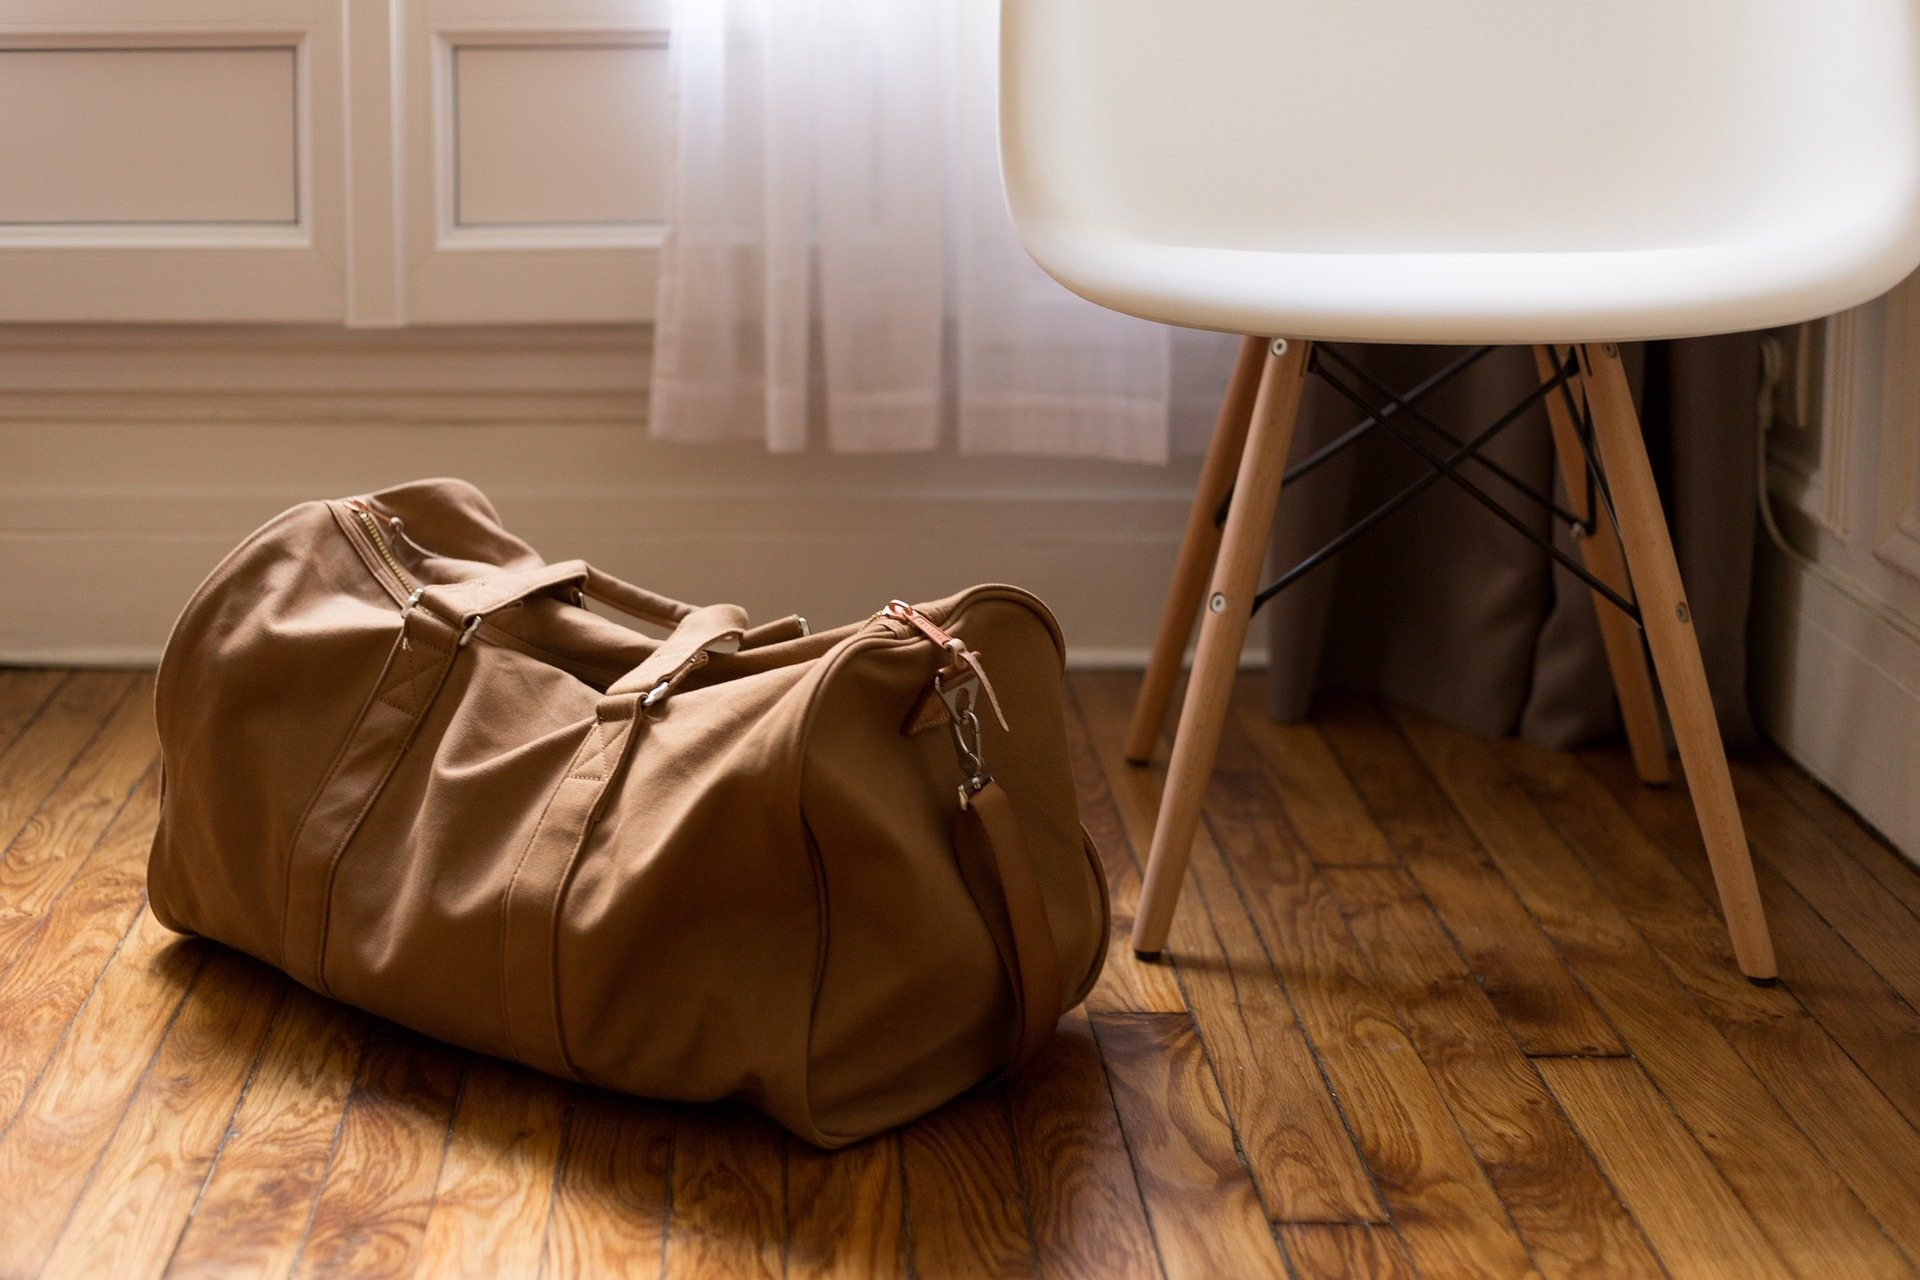 Short term missionaries Pixabay luggage-1081872_1920